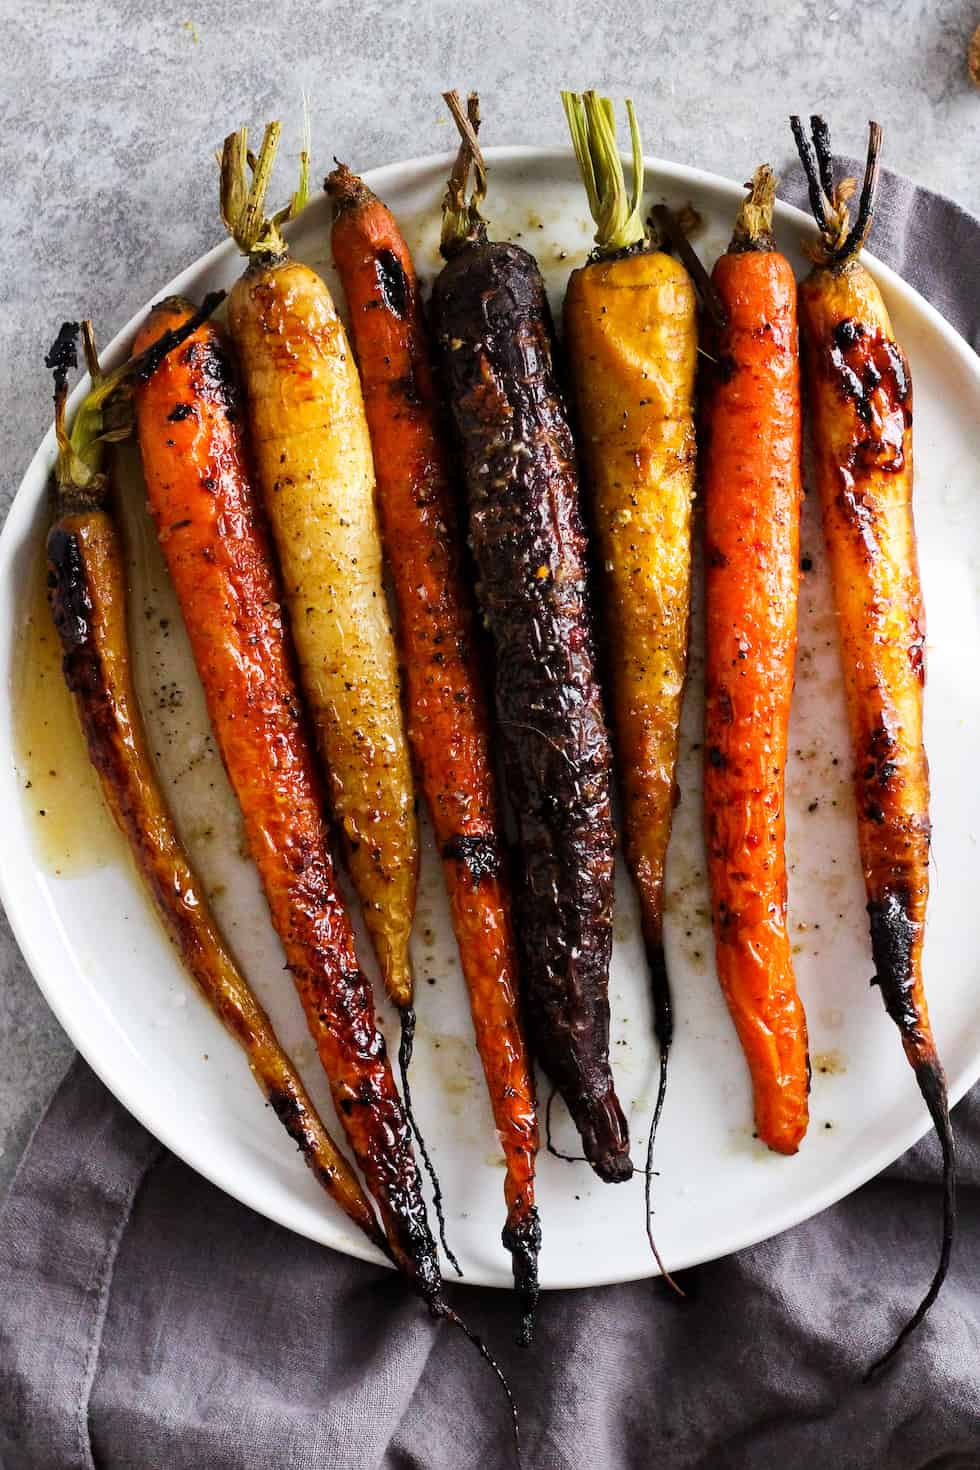 Roasted rainbow carrots on white plate with grey napkin.